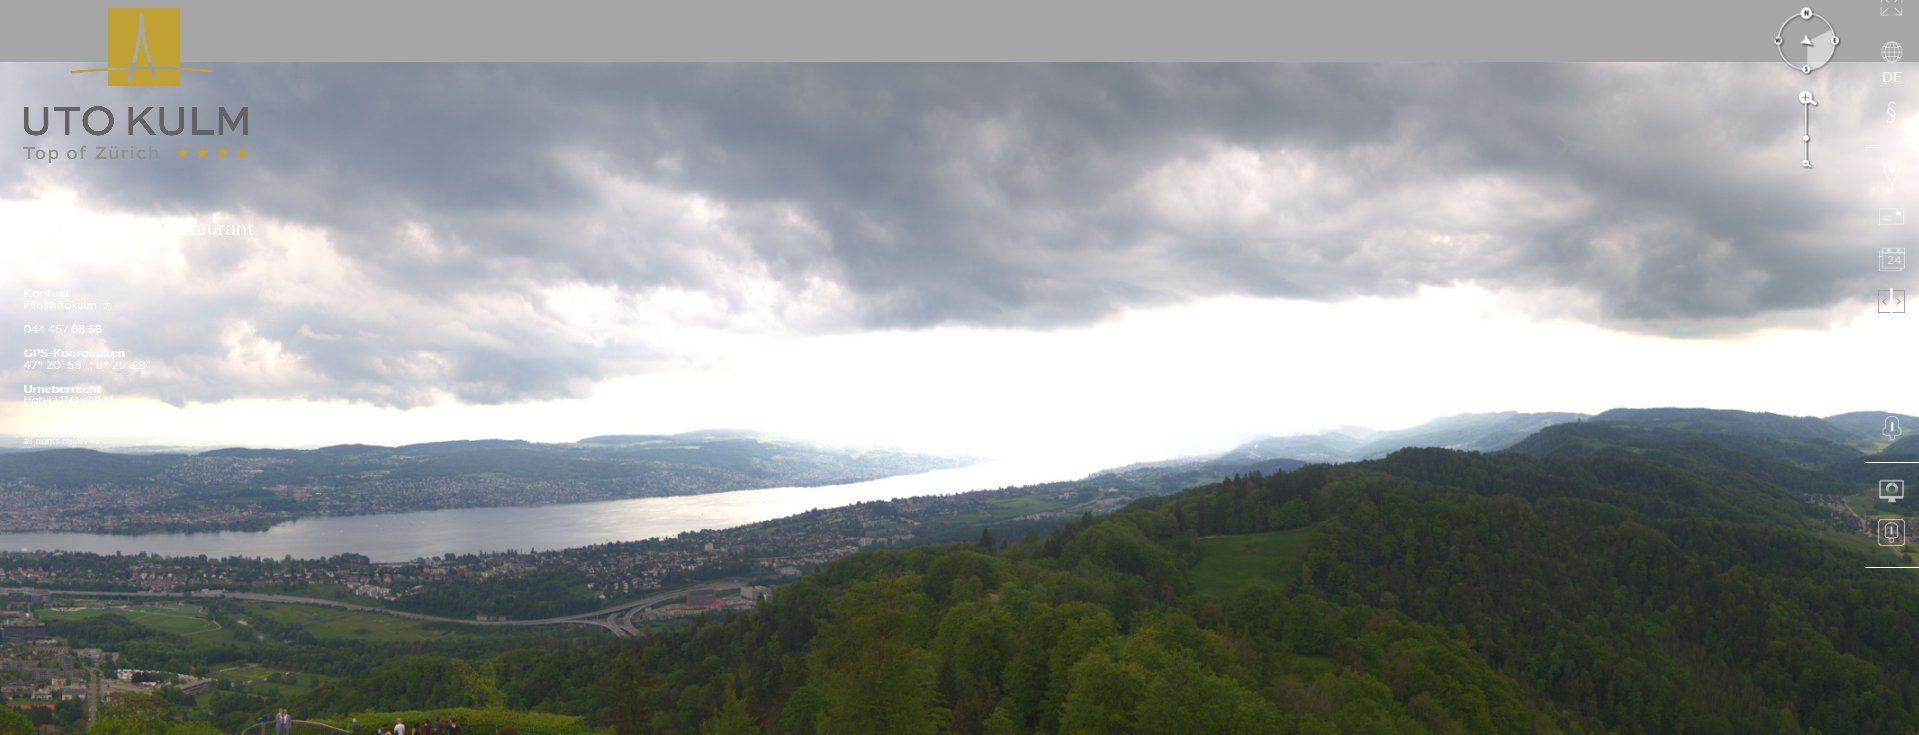 Webcam Uetliberg Kulm